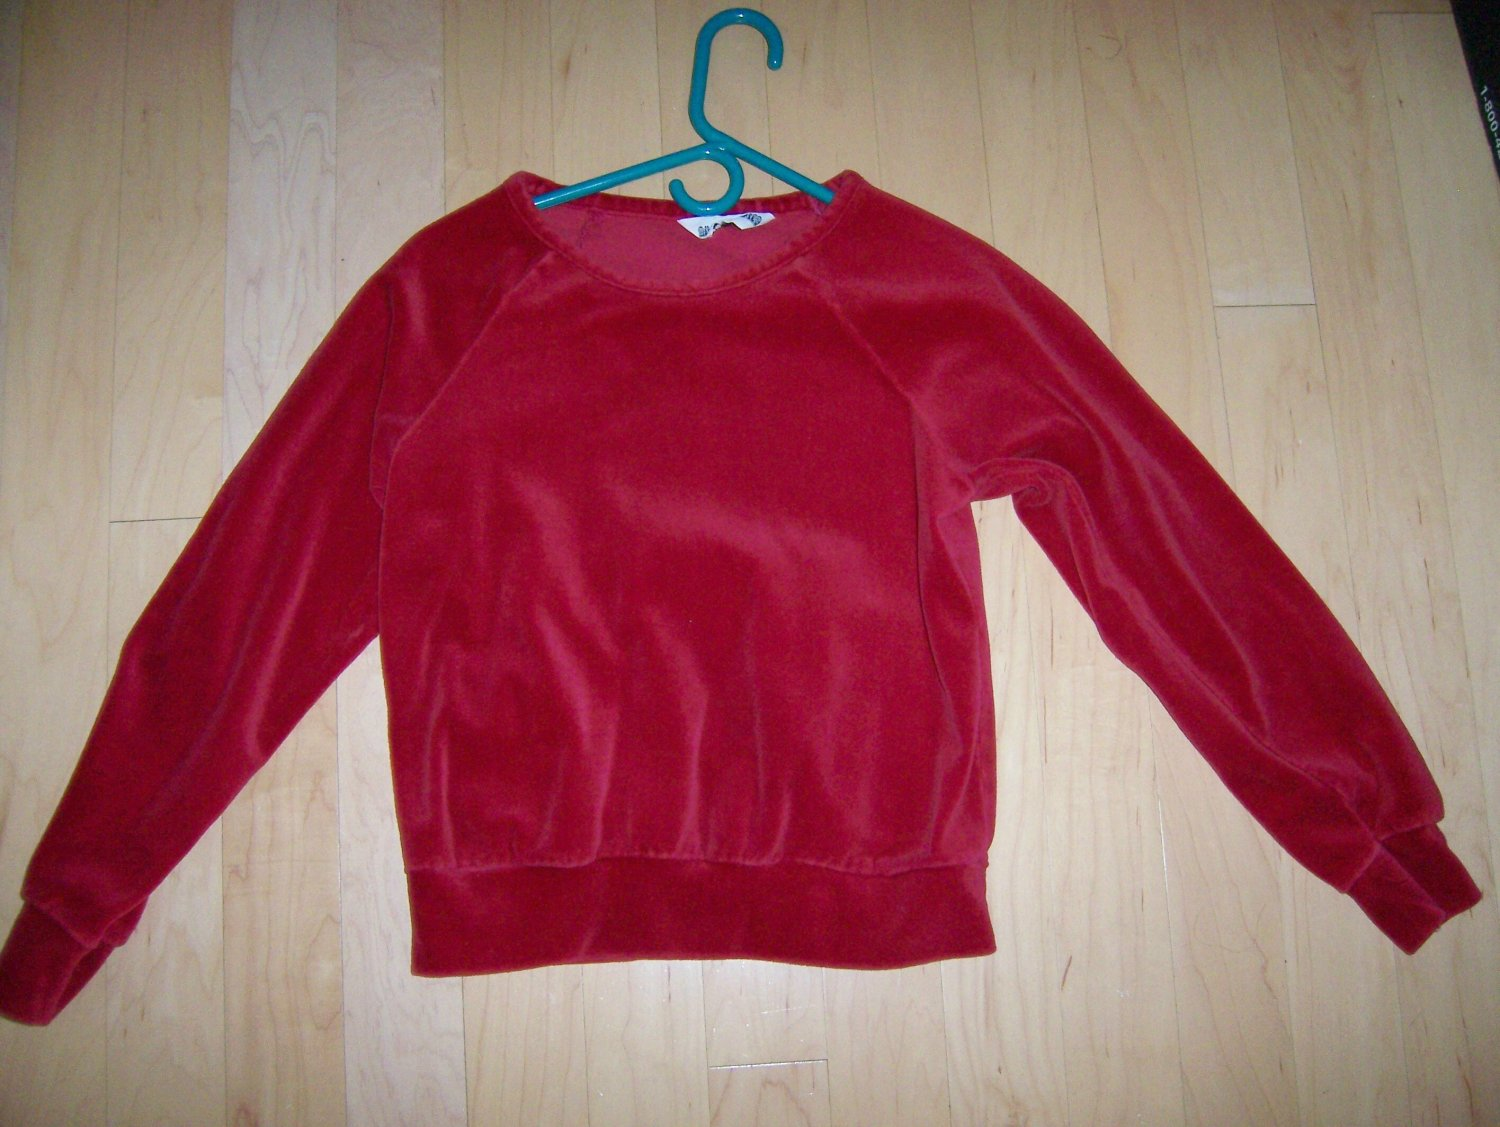 Misses/Ladies Long Sleeve Sweater Size 36 BNK286